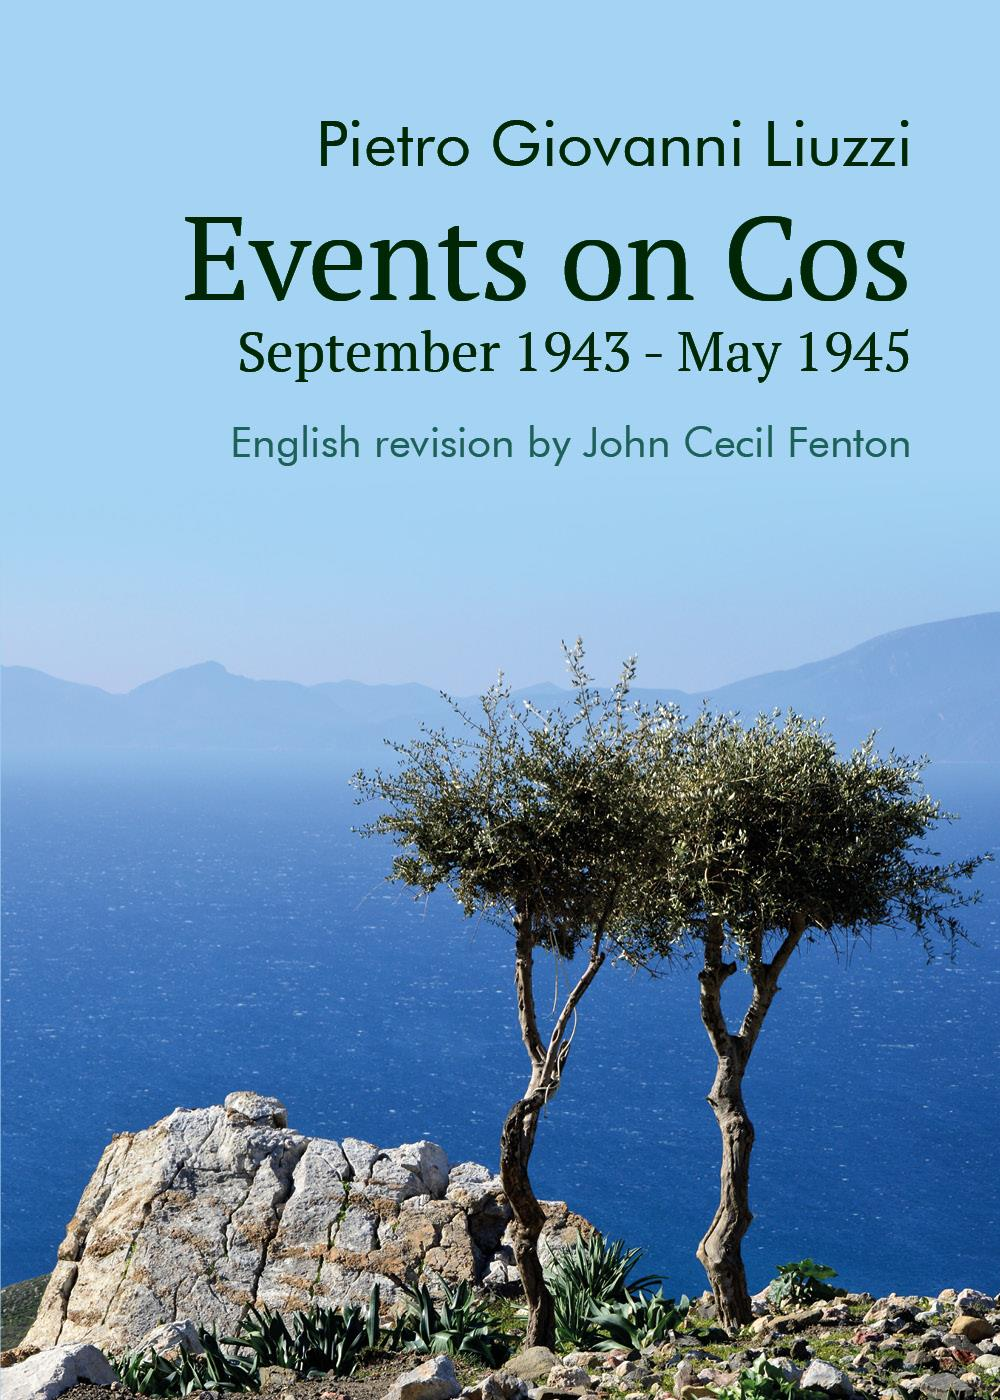 Events on Cos, September 1943 - May 1945